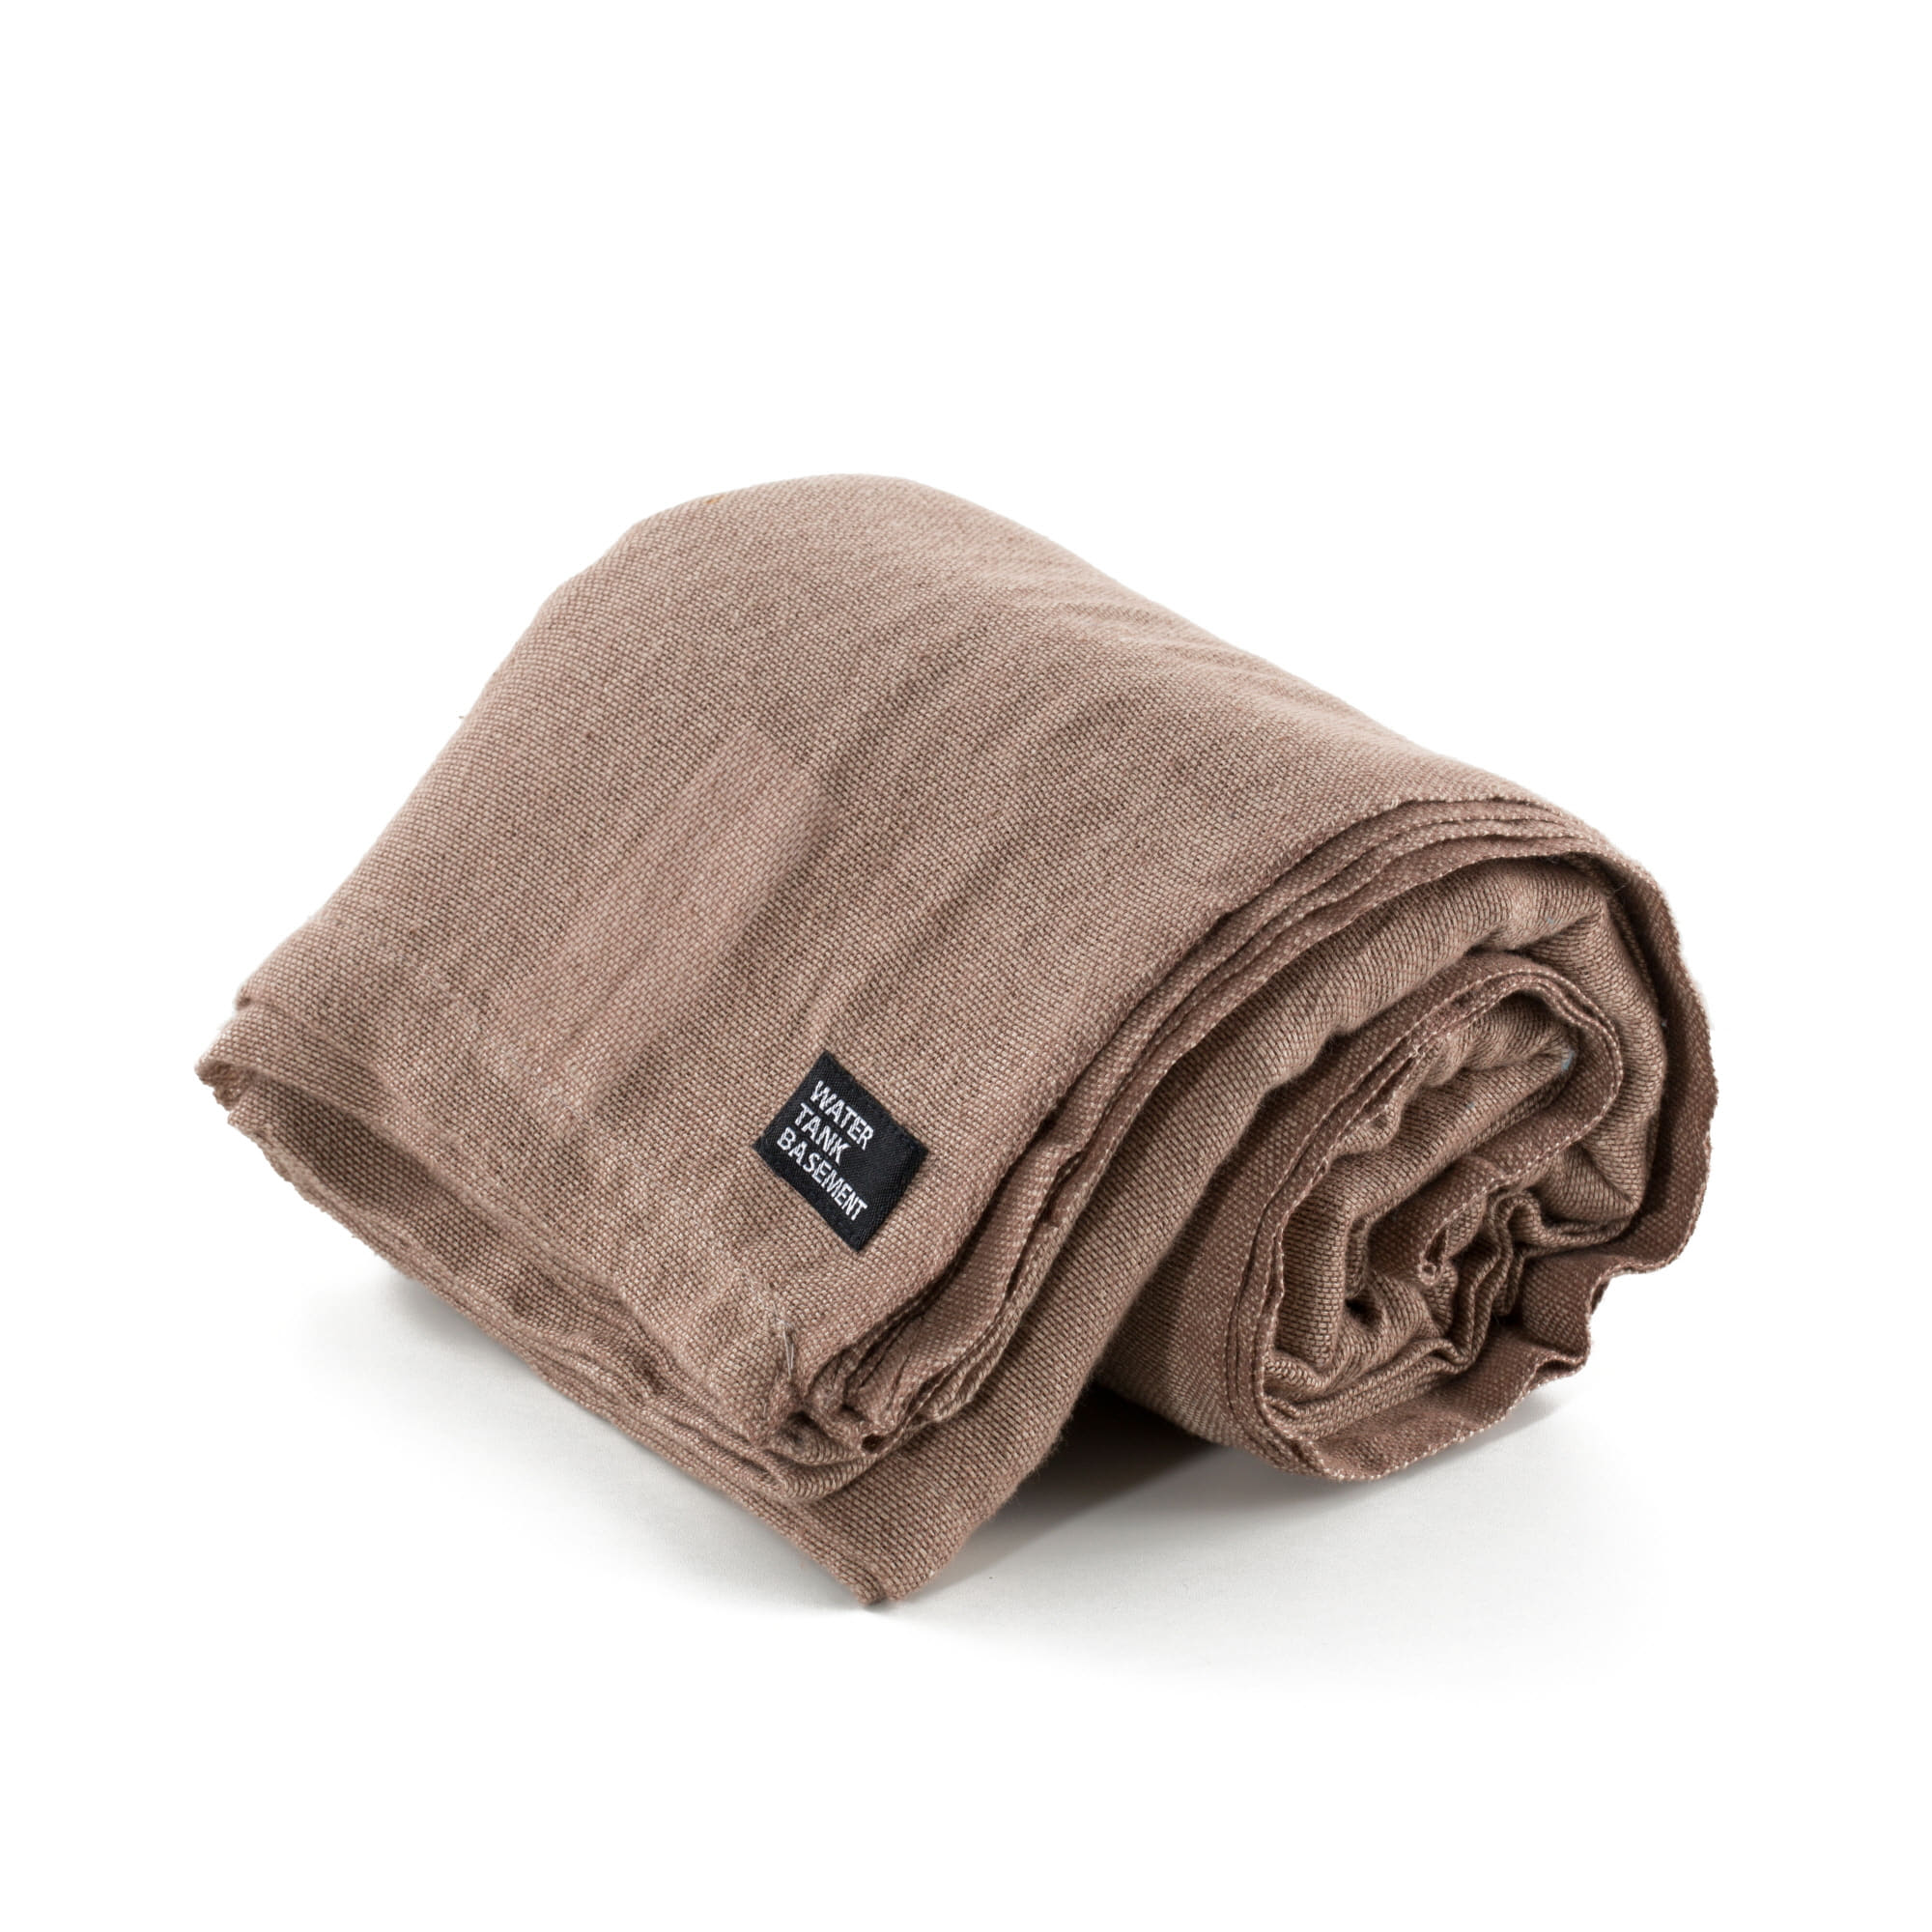 COTTON COVER - light brown